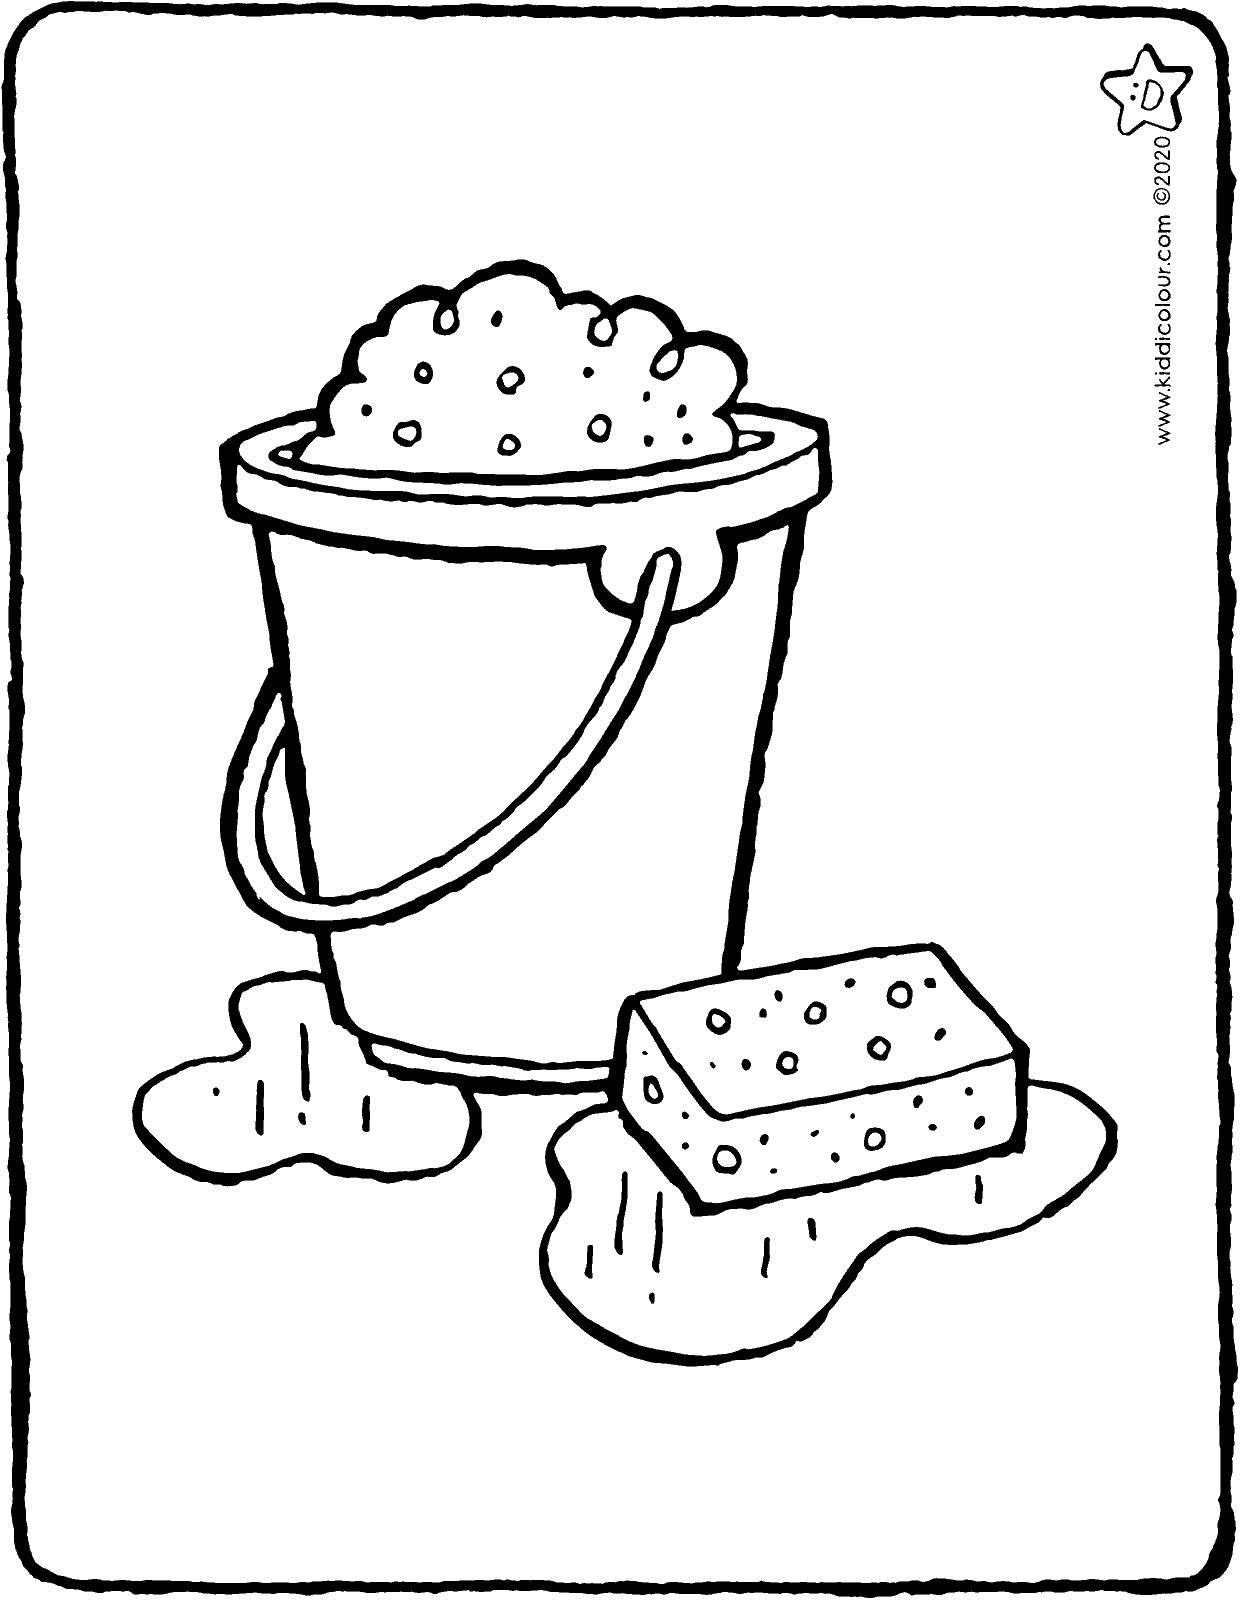 bucket with sponge colouring page drawing picture 01V